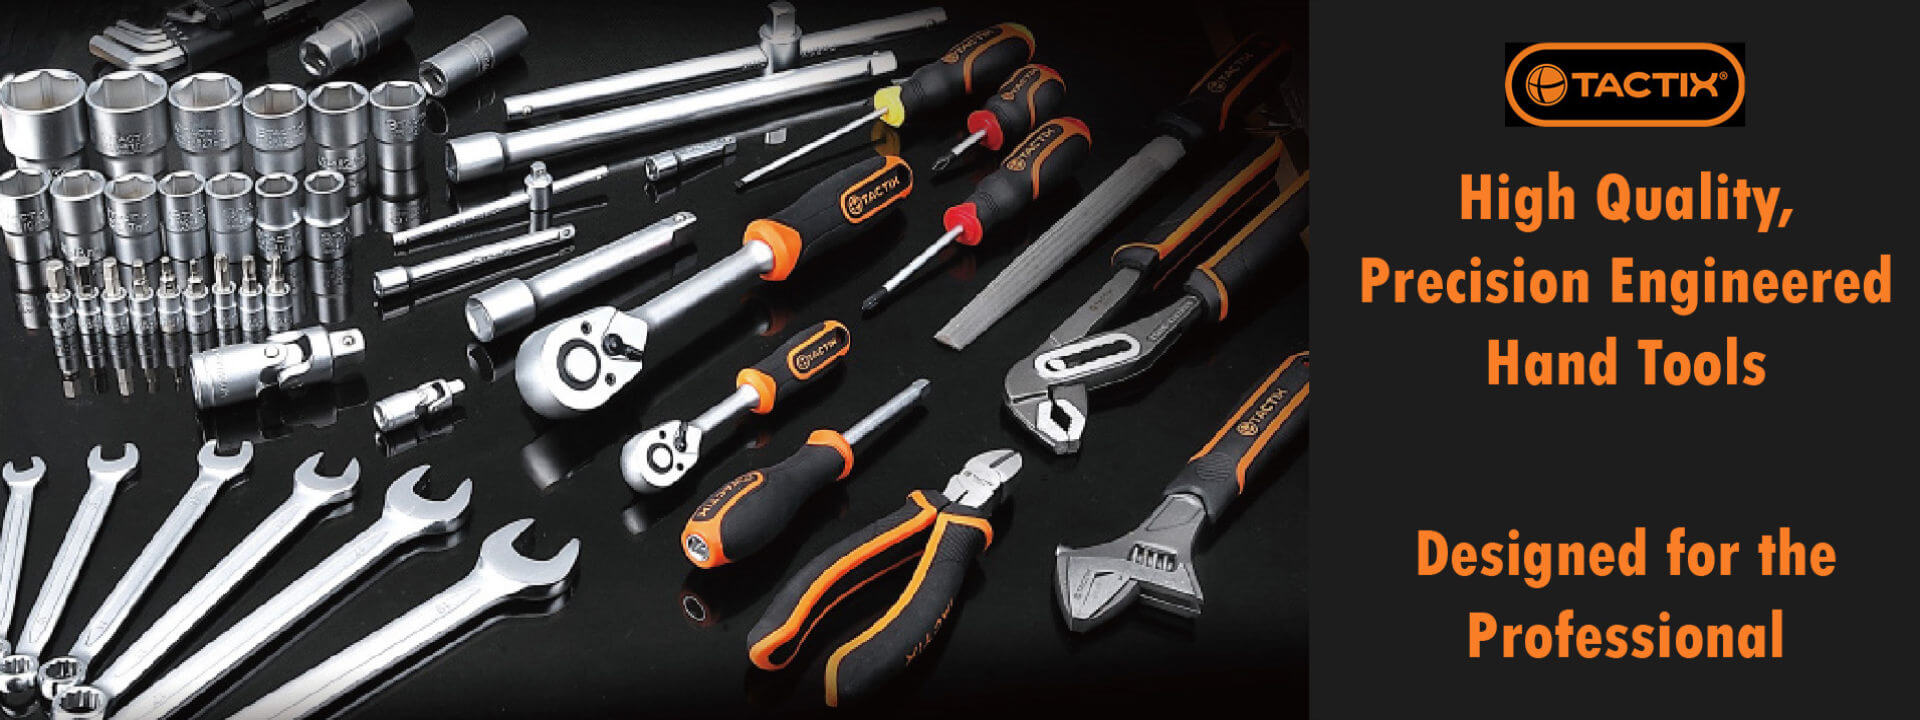 Tactix - Quality Hand Tools